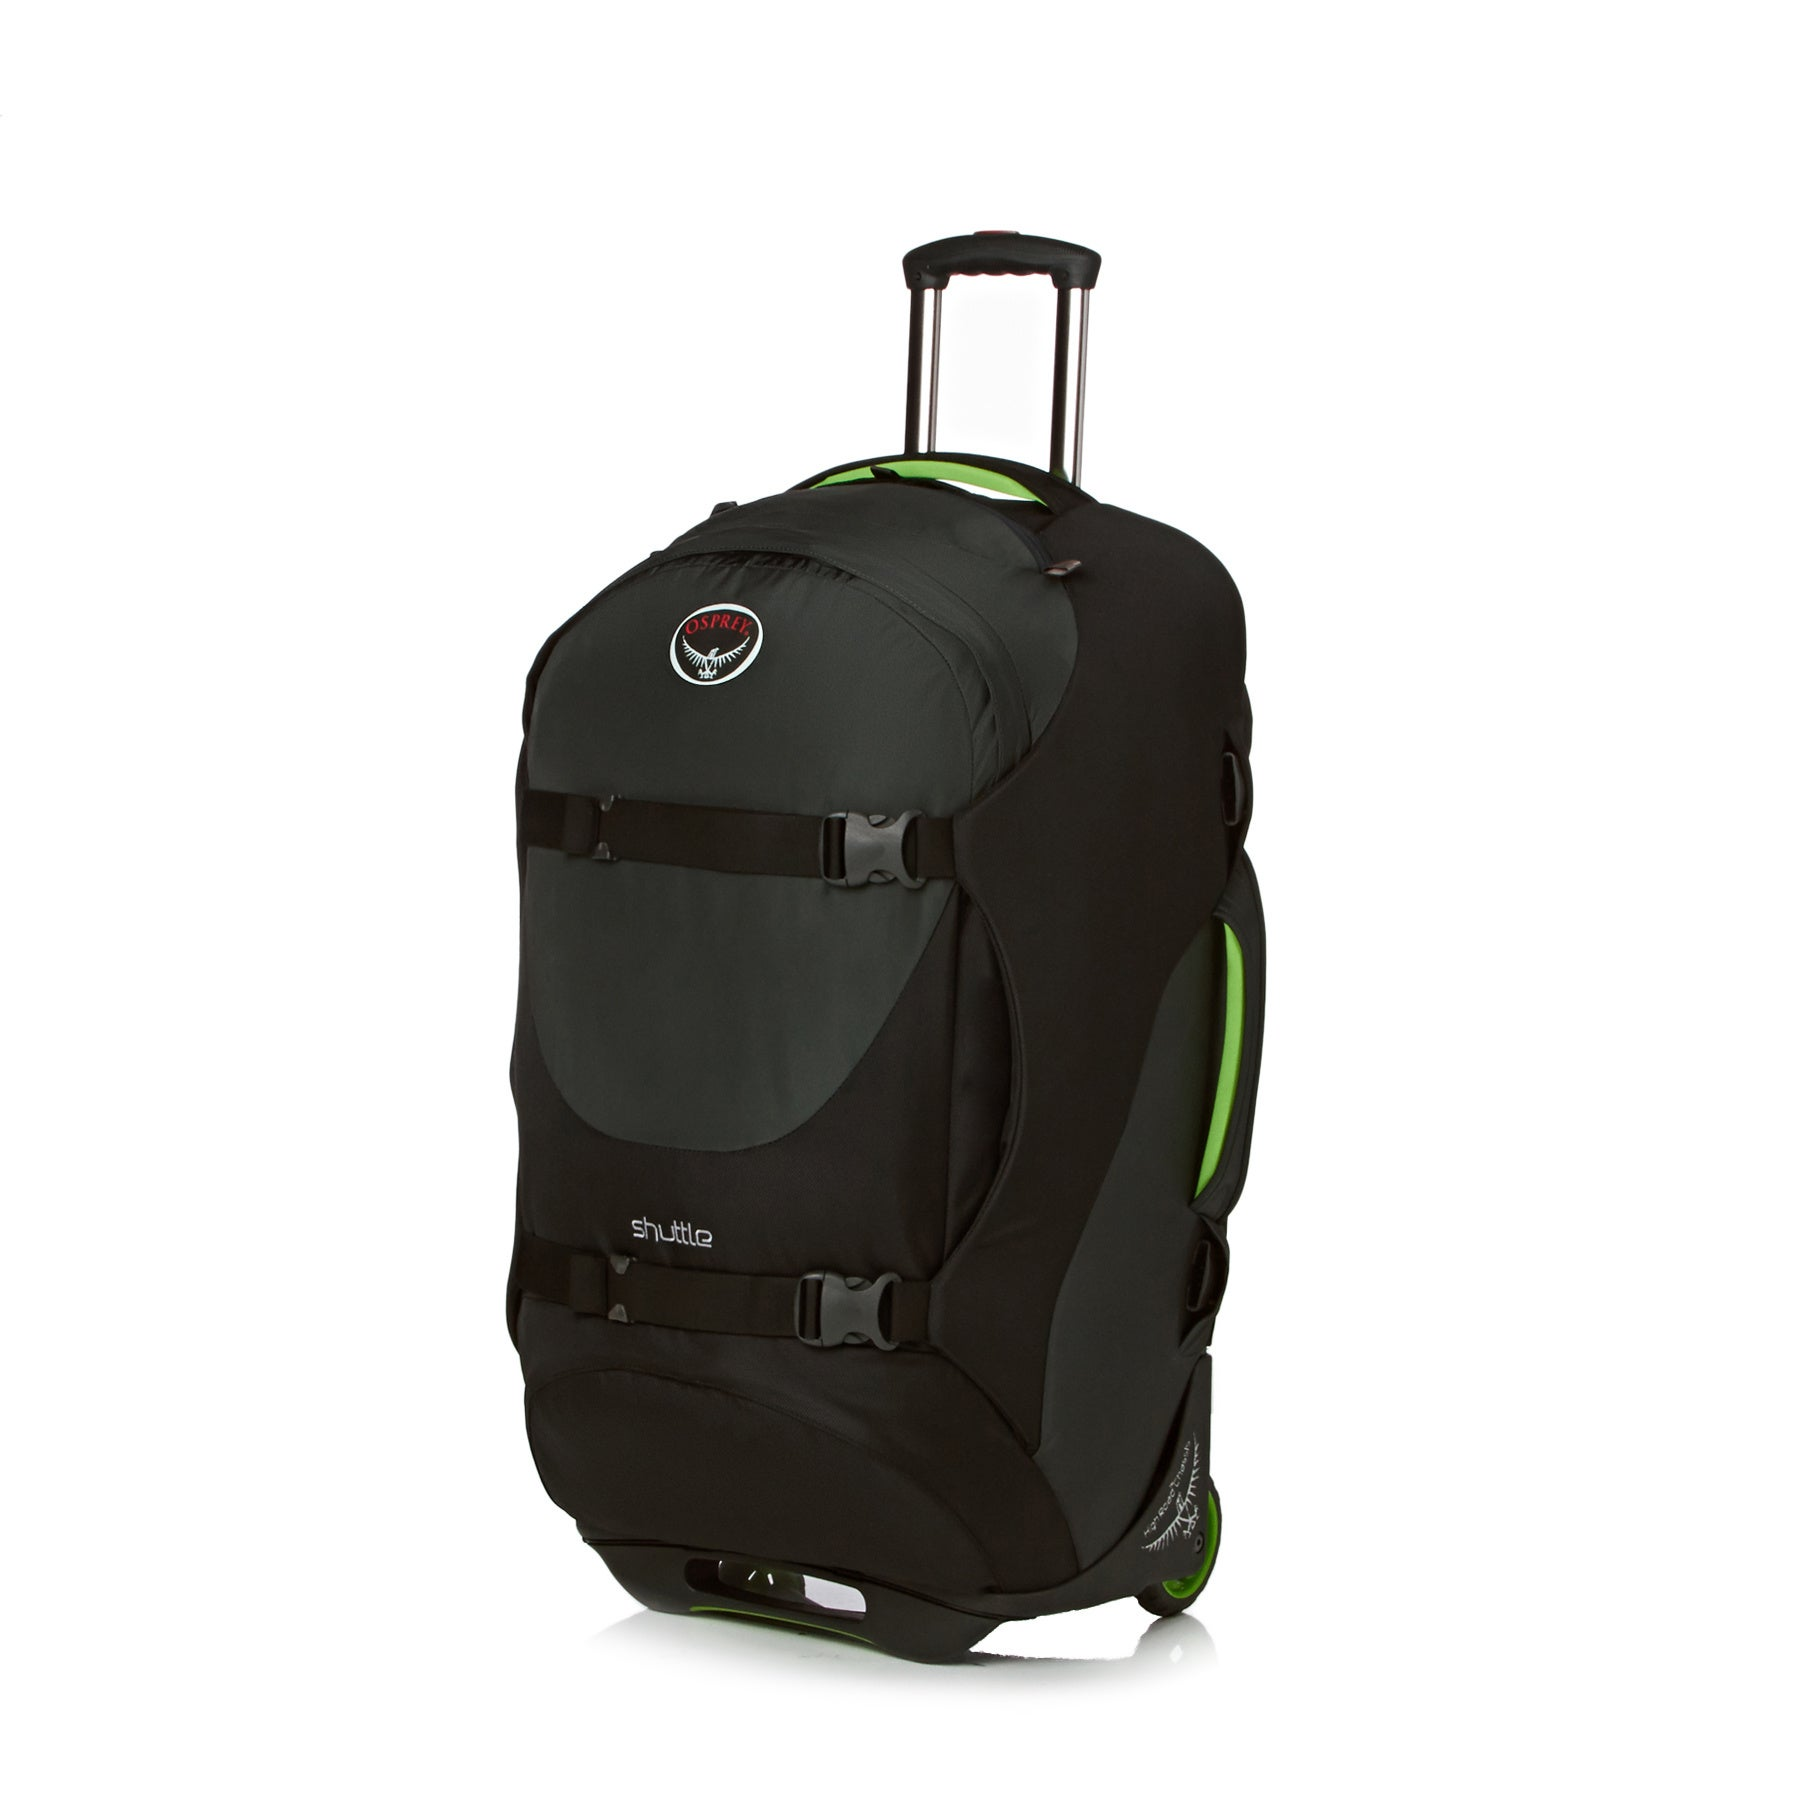 Osprey Shuttle 100 Luggage